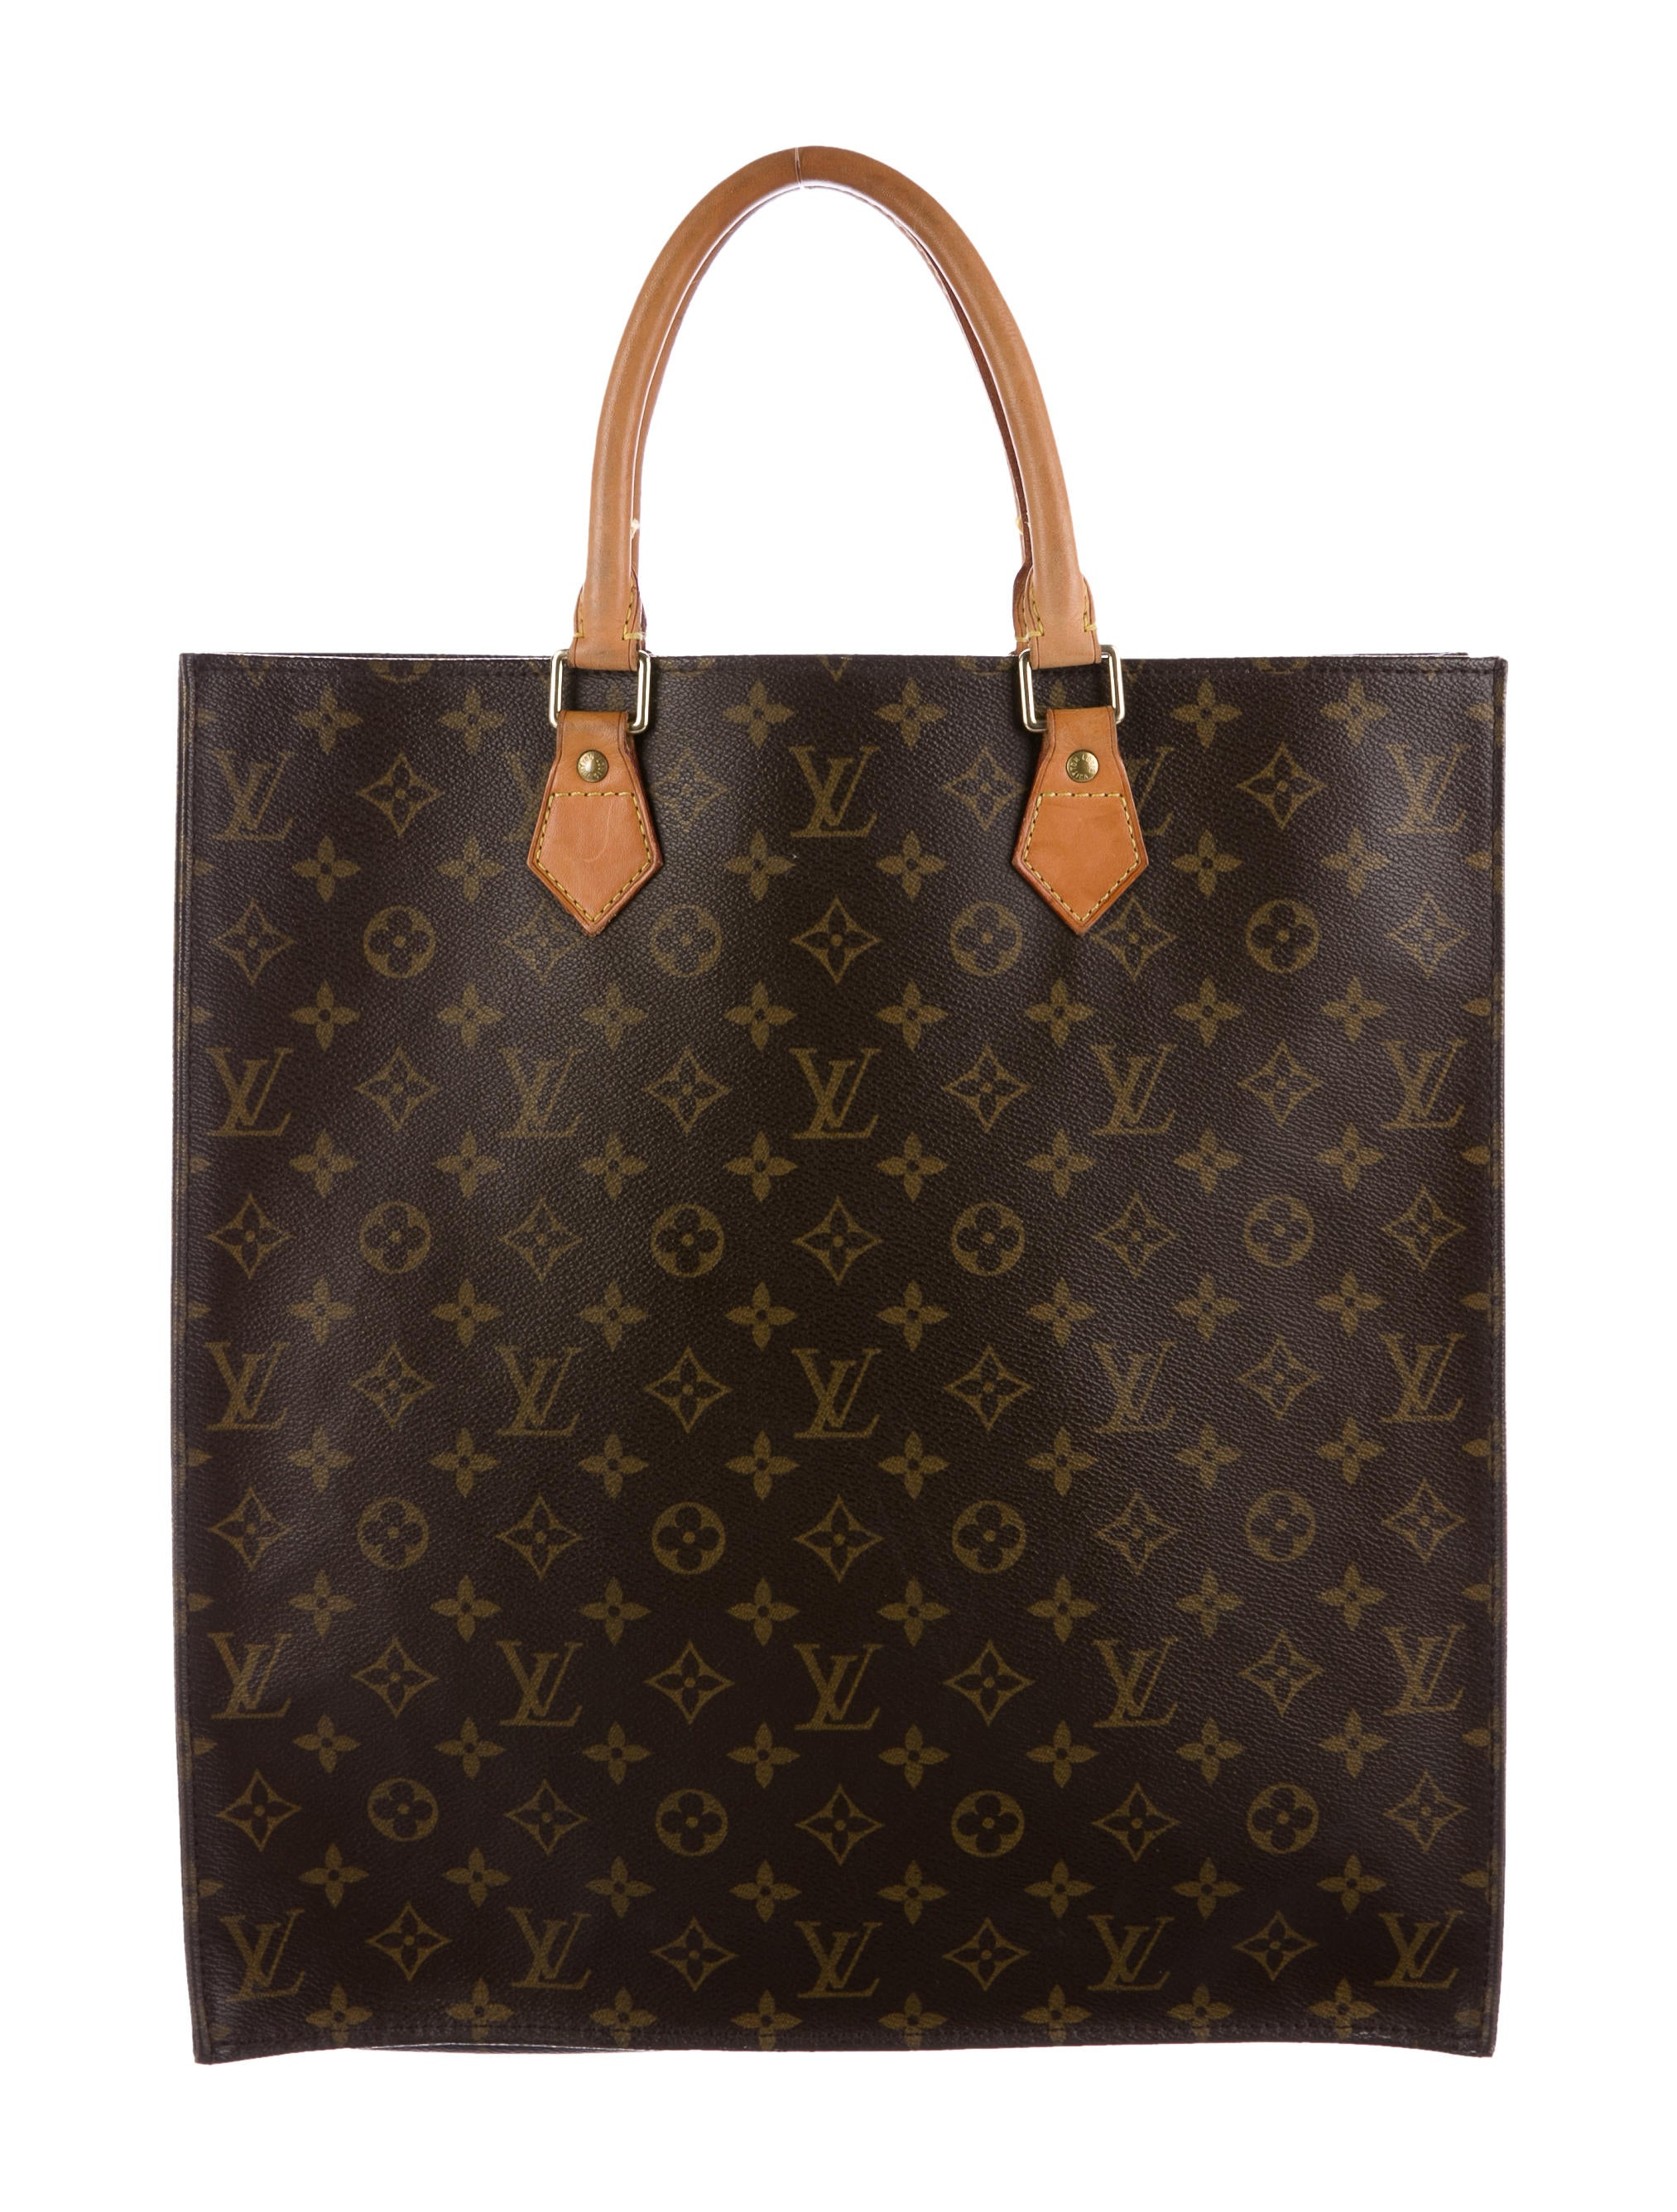 Louis vuitton monogram sac plat bags lou139018 the for Louis vuitton monogram miroir sac plat